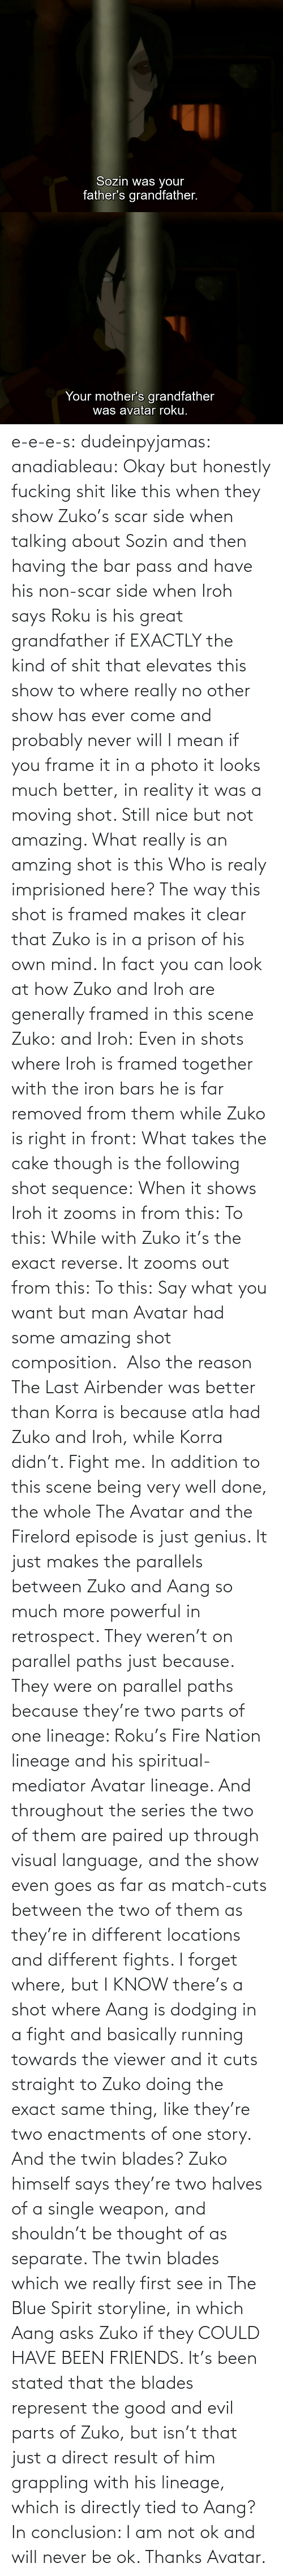 It Was: e-e-e-s: dudeinpyjamas:   anadiableau: Okay but honestly fucking shit like this when they show Zuko's scar side when talking about Sozin and then having the bar pass and have his non-scar side when Iroh says Roku is his great grandfather if EXACTLY the kind of shit that elevates this show to where really no other show has ever come and probably never will I mean if you frame it in a photo it looks much better, in reality it was a moving shot. Still nice but not amazing. What really is an amzing shot is this Who is realy imprisioned here? The way this shot is framed makes it clear that Zuko is in a prison of his own mind. In fact you can look at how Zuko and Iroh are generally framed in this scene Zuko: and Iroh: Even in shots where Iroh is framed together with the iron bars he is far removed from them while Zuko is right in front:  What takes the cake though is the following shot sequence: When it shows Iroh it zooms in from this: To this: While with Zuko it's the exact reverse. It zooms out from this: To this: Say what you want but man Avatar had some amazing shot composition.   Also the reason The Last Airbender was better than Korra is because atla had Zuko and Iroh, while Korra didn't. Fight me.    In addition to this scene being very well done, the whole The Avatar and the Firelord episode is just genius.  It just makes the parallels between Zuko and Aang so much more powerful in retrospect.  They weren't on parallel paths just because.  They were on parallel paths because they're two parts of one lineage: Roku's Fire Nation lineage and his spiritual-mediator Avatar lineage.  And throughout the series the two of them are paired up through visual language, and the show even goes as far as match-cuts between the two of them as they're in different locations and different fights.  I forget where, but I KNOW there's a shot where Aang is dodging in a fight and basically running towards the viewer and it cuts straight to Zuko doing the exact same thing, like they're two enactments of one story.   And the twin blades?  Zuko himself says they're two halves of a single weapon, and shouldn't be thought of as separate.  The twin blades which we really first see in The Blue Spirit storyline, in which Aang asks Zuko if they COULD HAVE BEEN FRIENDS.  It's been stated that the blades represent the good and evil parts of Zuko, but isn't that just a direct result of him grappling with his lineage, which is directly tied to Aang? In conclusion: I am not ok and will never be ok.  Thanks Avatar.